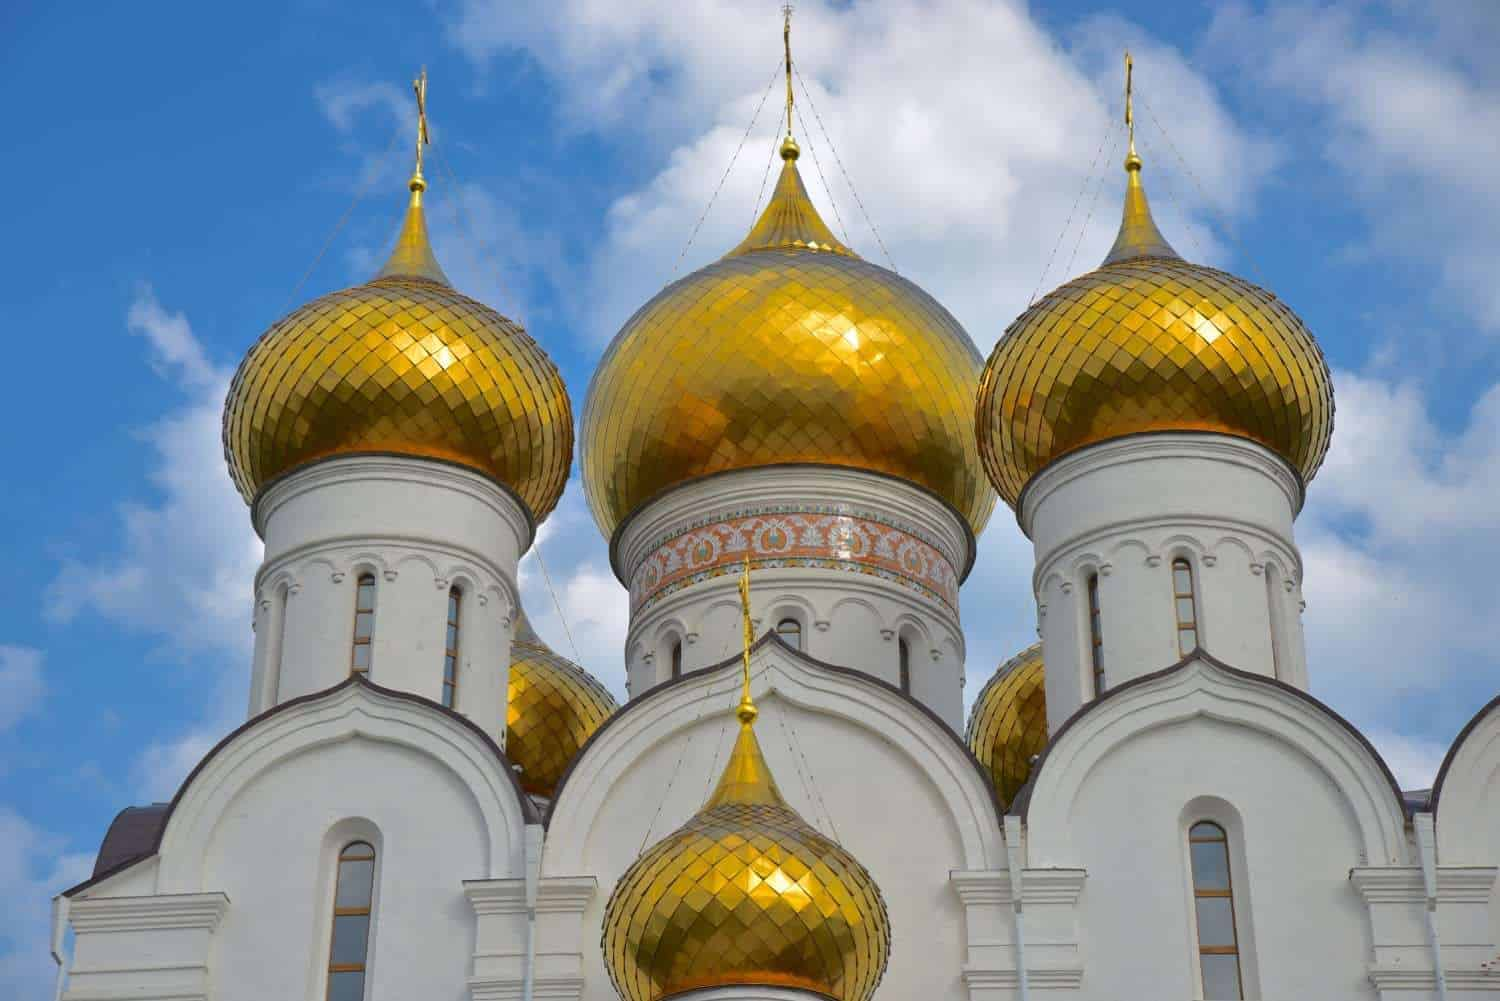 4 golden domes atop a church in Yaroslavl Russia